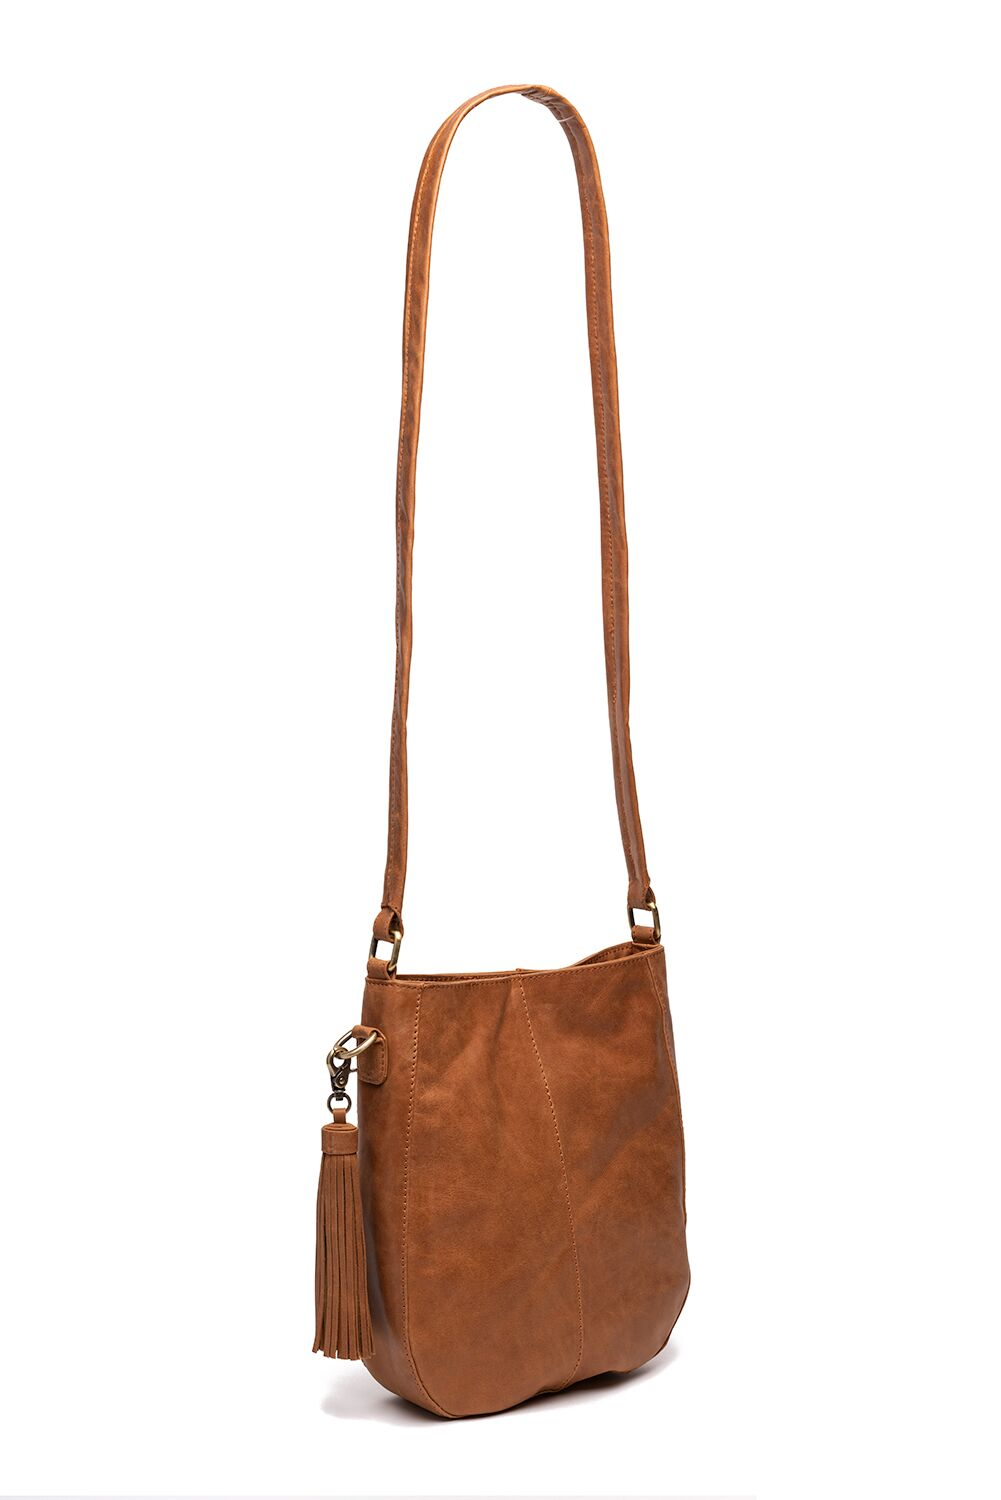 Leather Handbag Reid Handbags Canyon X Latte